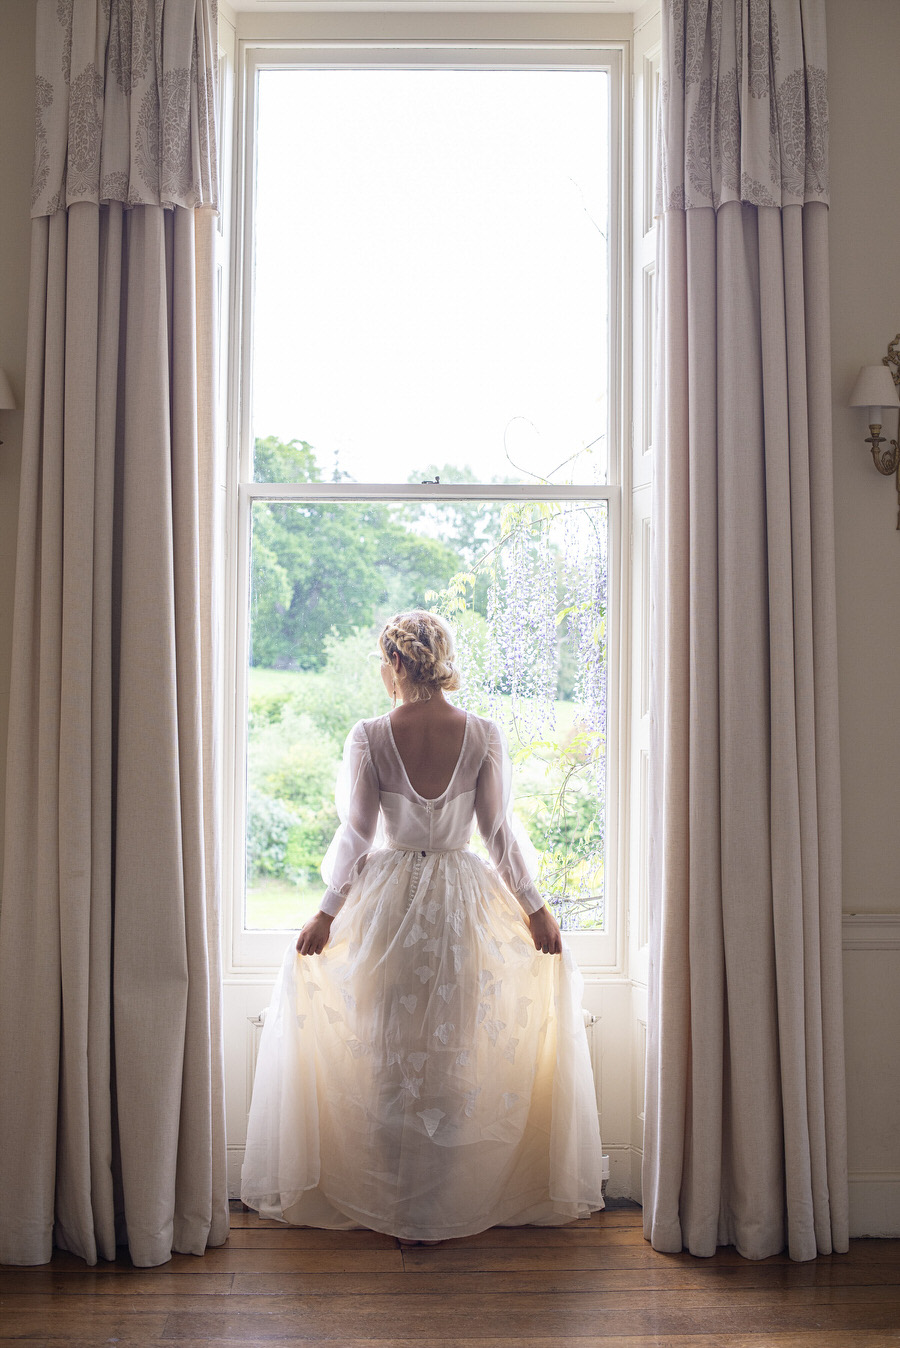 Pynes House wedding styling ideas with Ailsa Munro, Sarah Shuttle and Lottie Ettling PHotography (27)